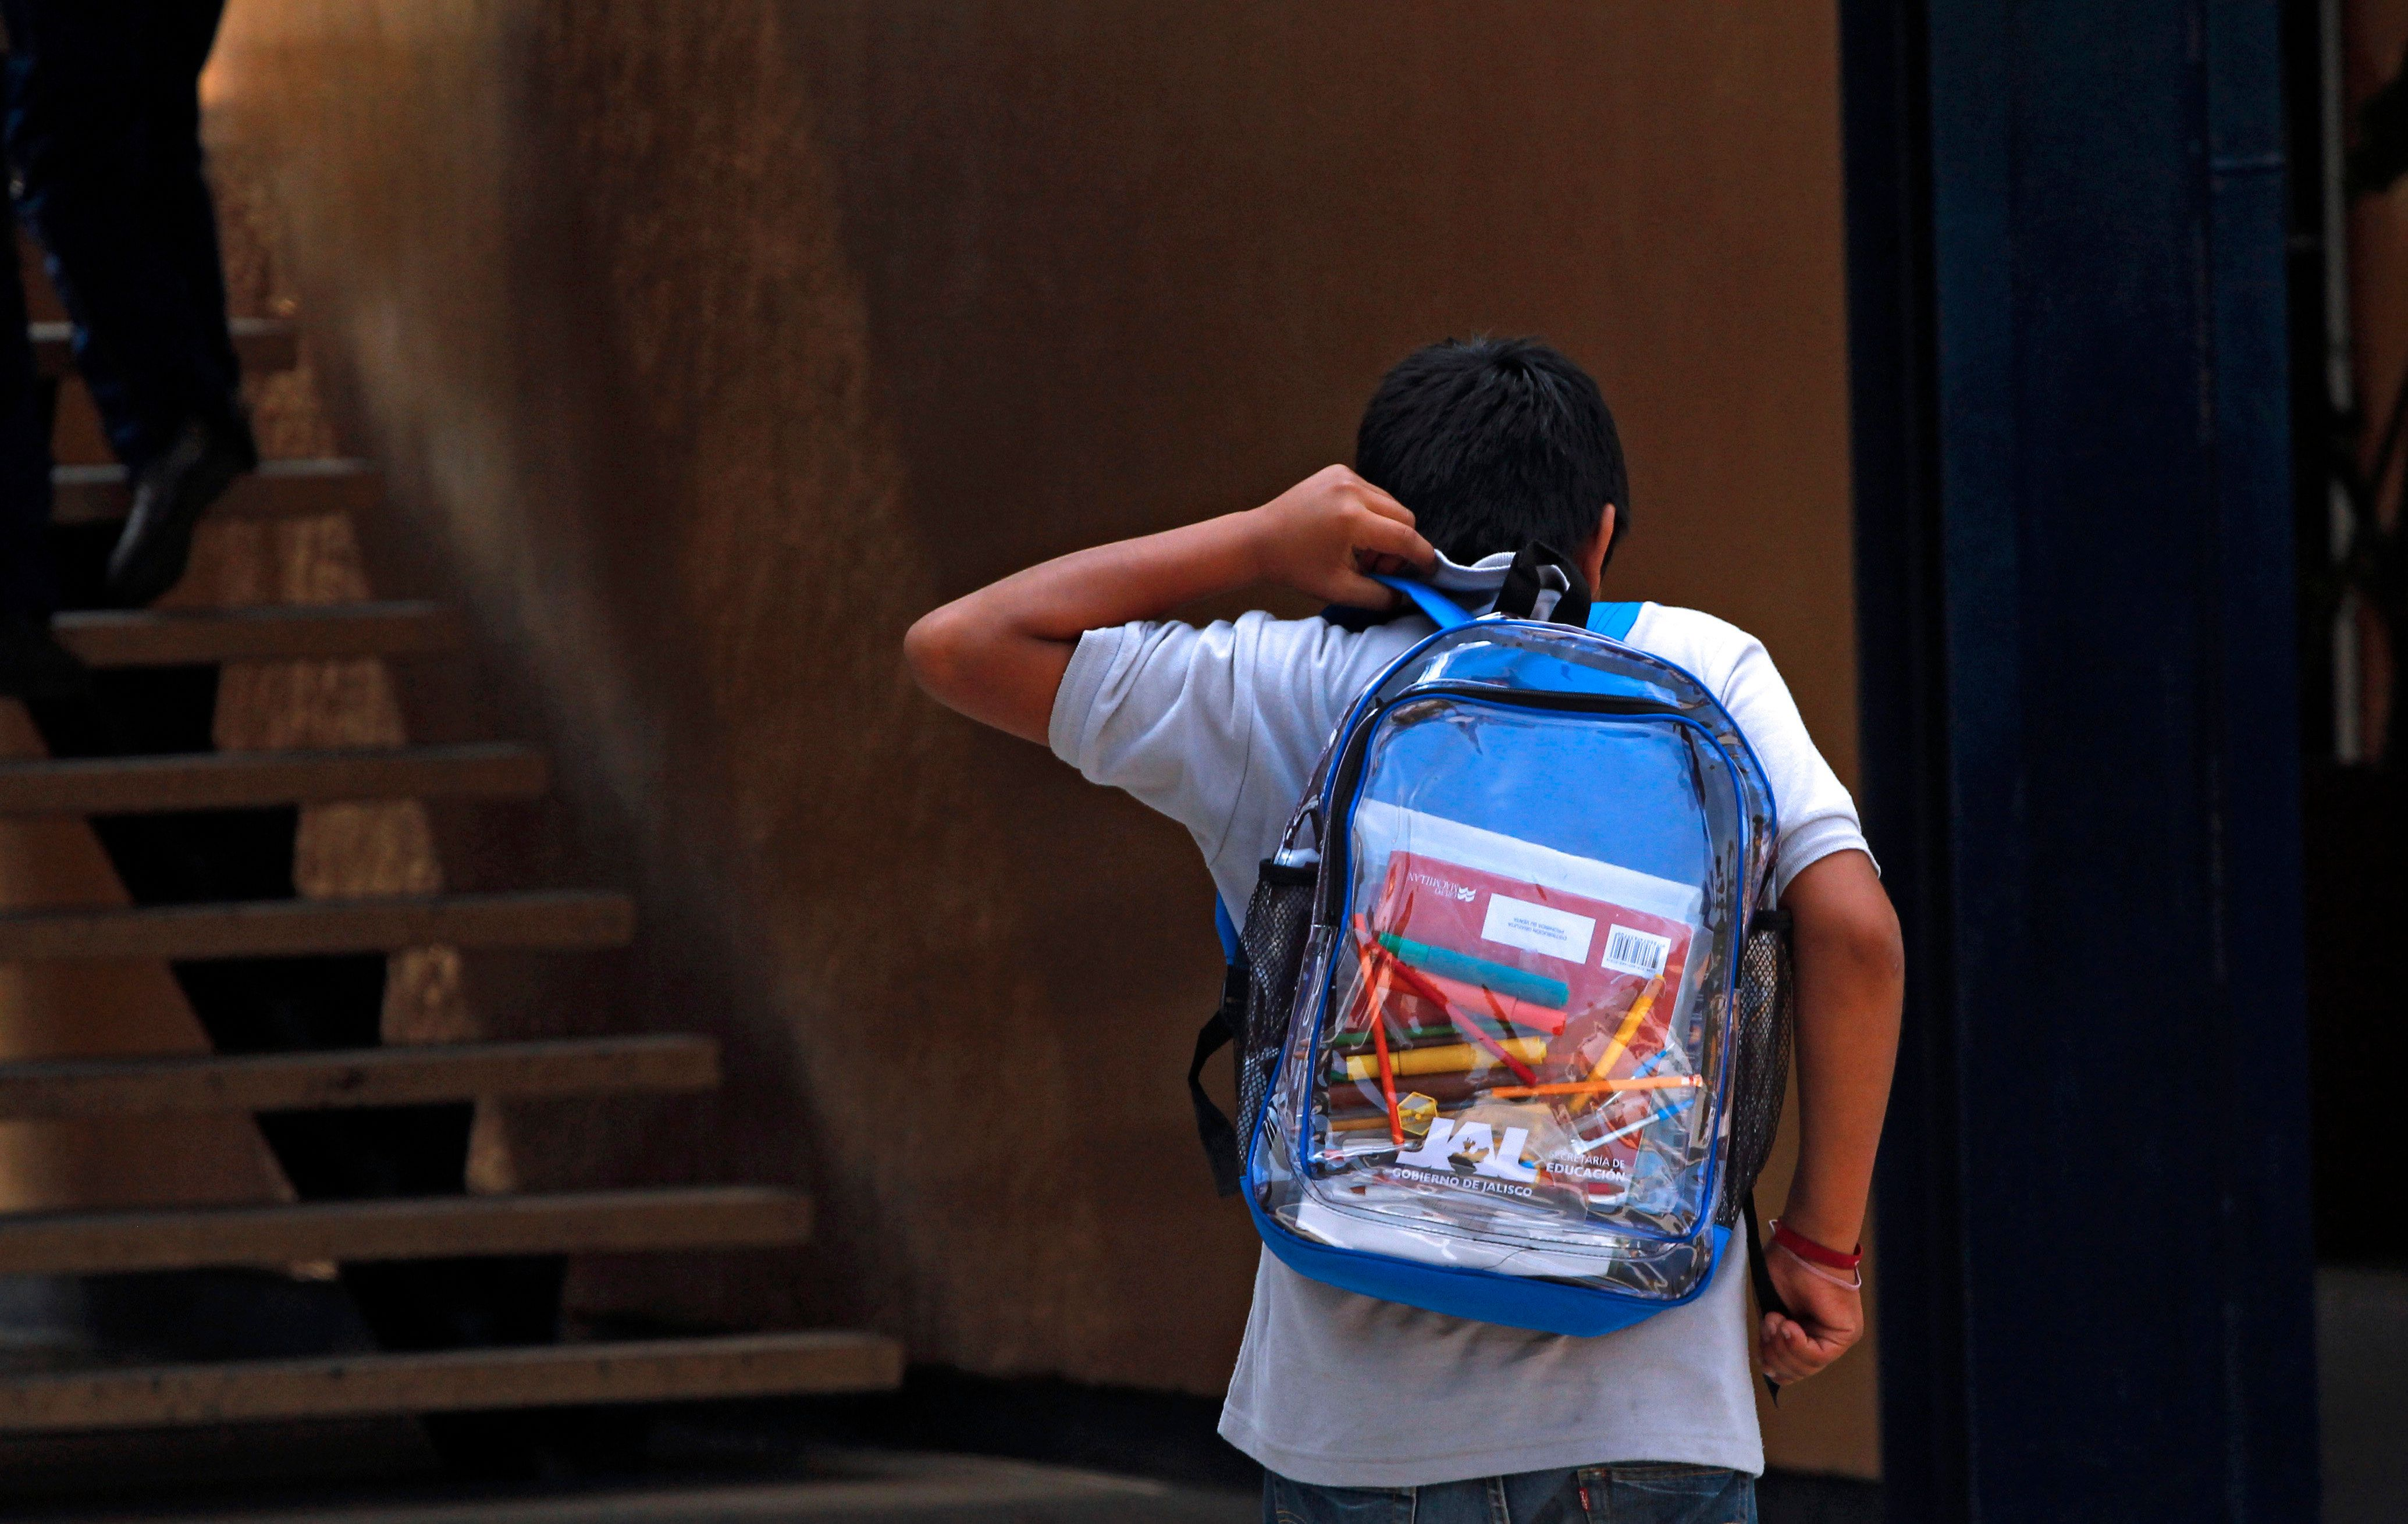 A secondary school student walks carrying his new transparent backpack  in Guadalajara, Mexico on October 25, 2012. The transparent backpacks are part of the program 'Escuela Segura' (Safe School ) to avoid violence in schools and in the coming days the State Government will deliver 10,000 more of these hoping the measure will help teachers and parents see what students are taking to school. AFP PHOTO/Hector Guerrero        (Photo credit should read HECTOR GUERRERO/AFP/Getty Images)